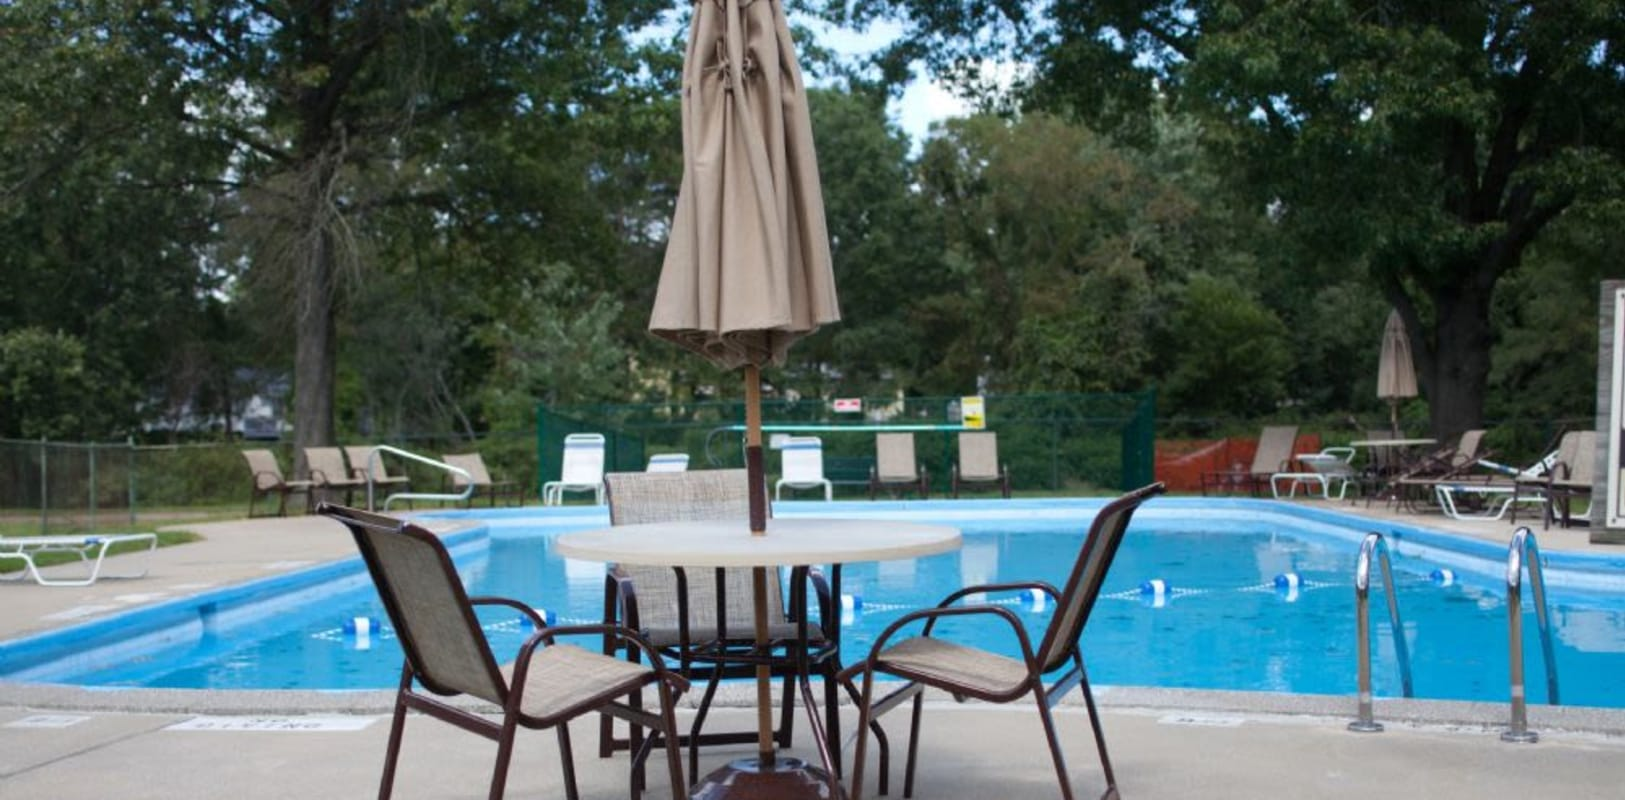 Swimming pool with lots of seating at Wynbrook West Apartments in East Windsor, New Jersey